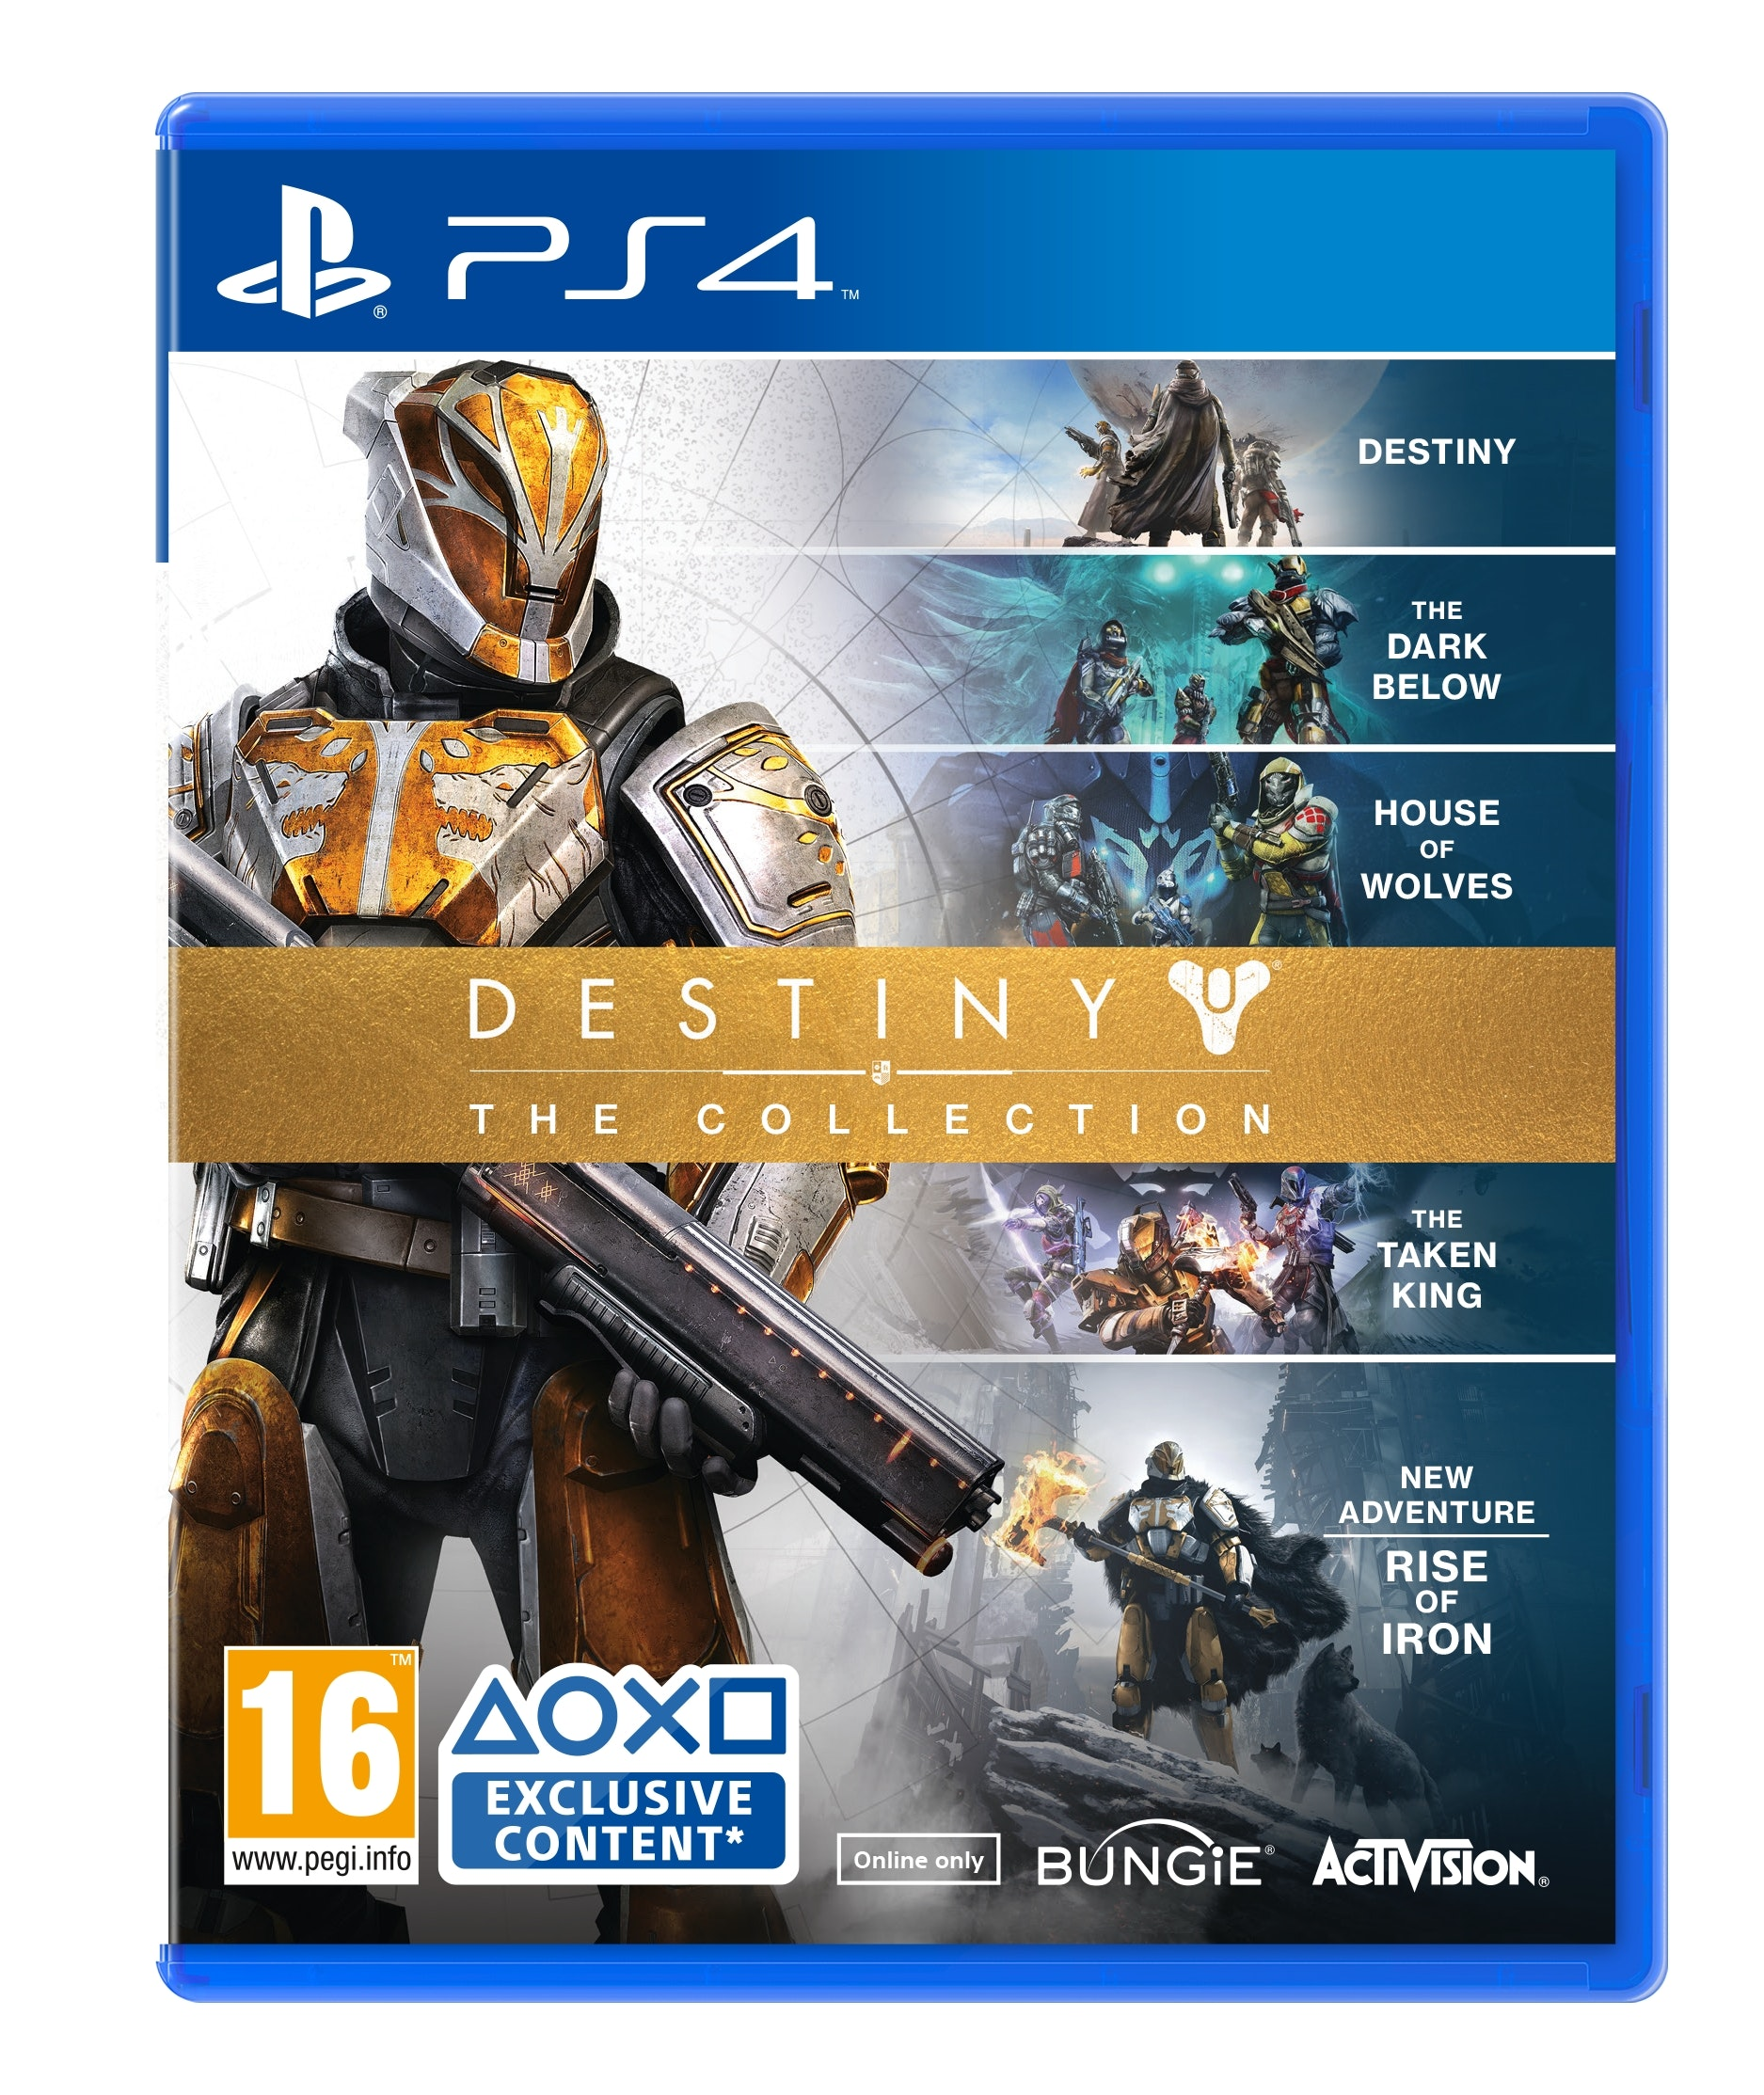 Destiny – The Collection for the PS4 sweepstakes